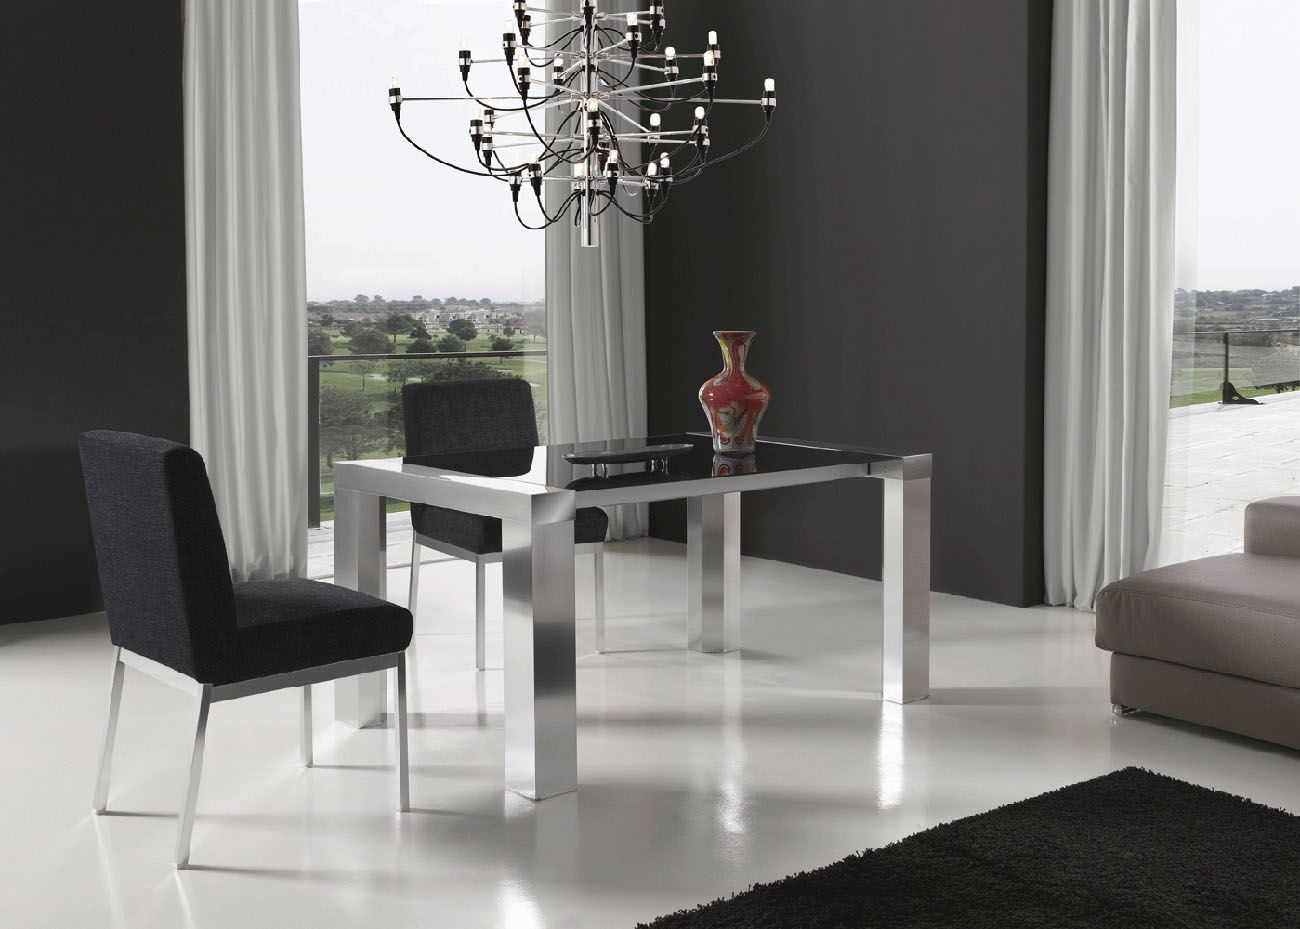 Extendable Rectangular In Wood Glass Top Fabric Seats Modern Dinner Table Set